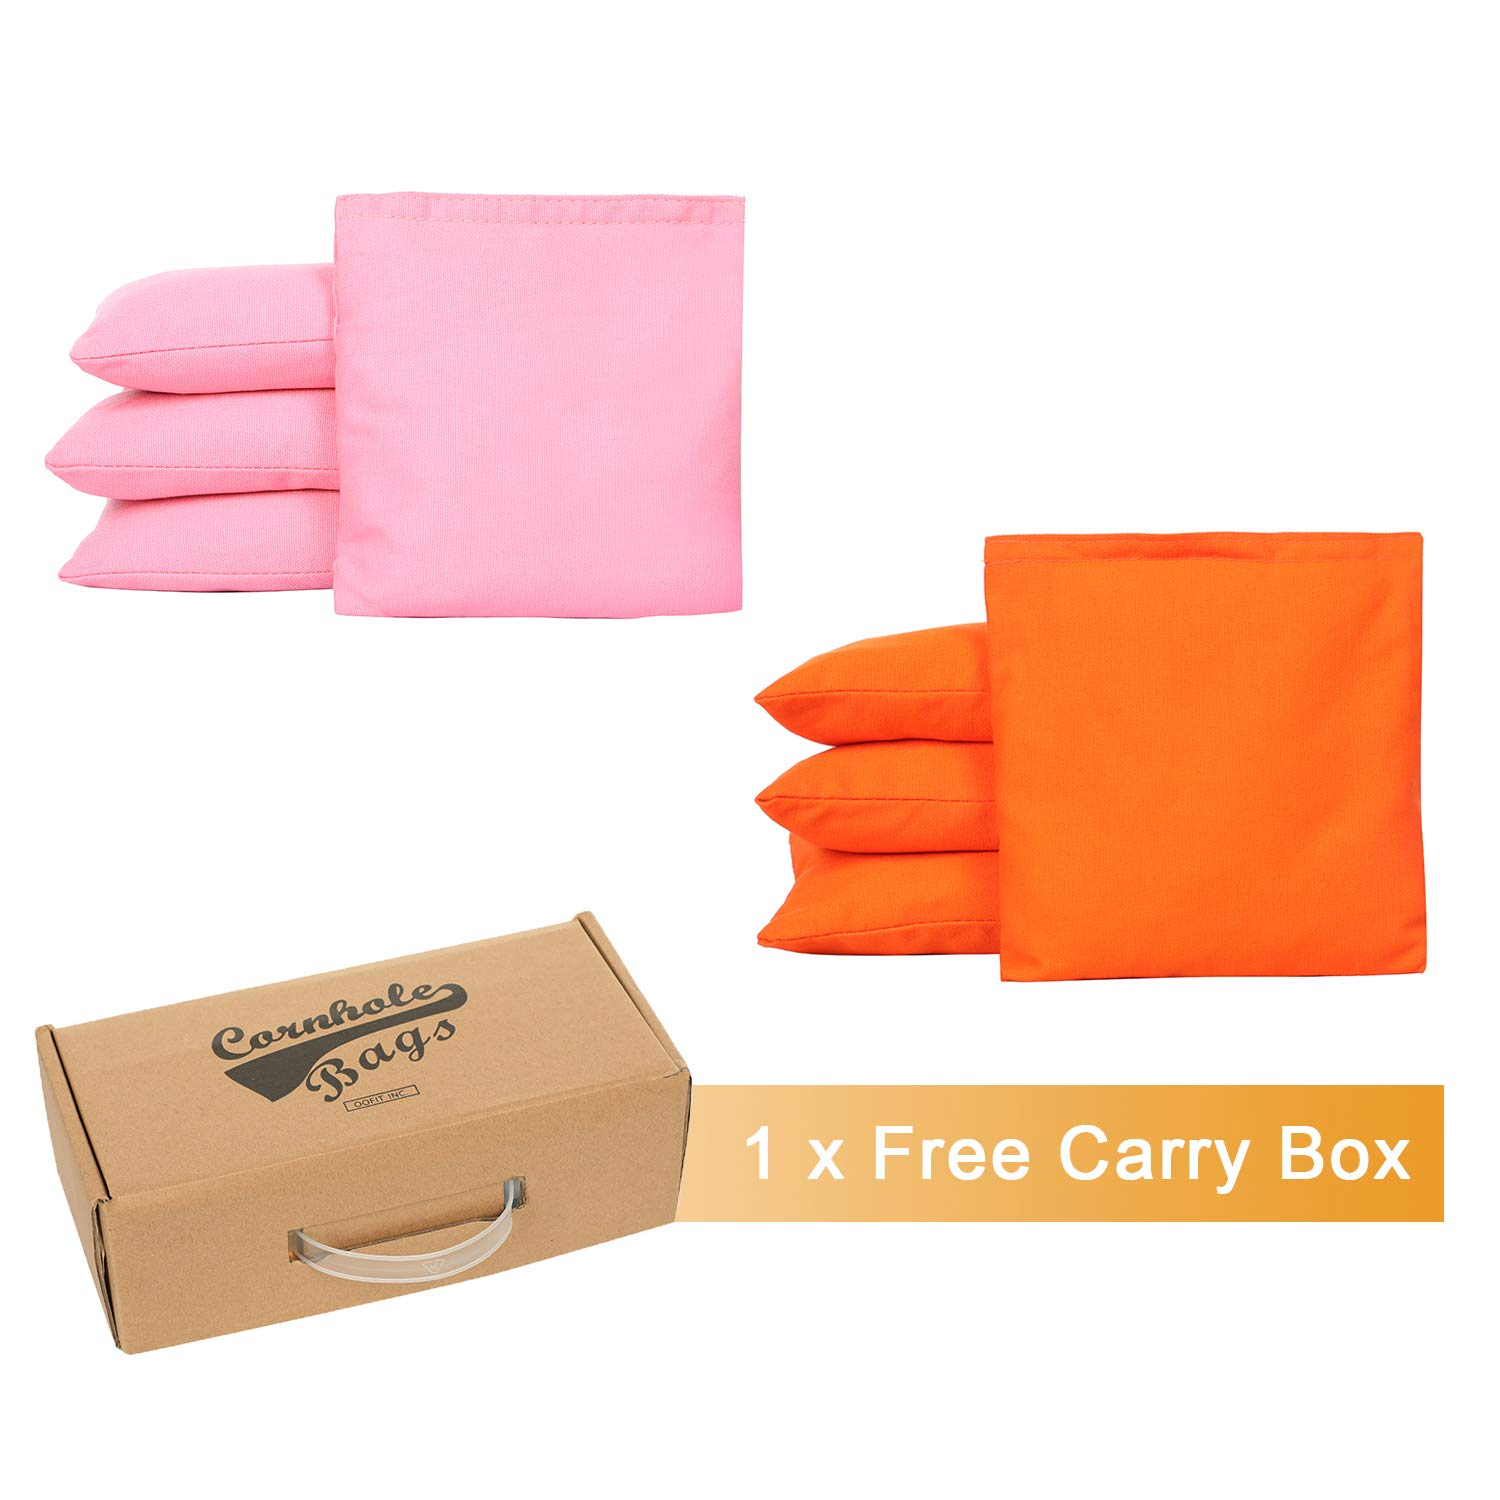 OOFIT Cornhole Bean Bags Set of 8 Weather Resistant for Tossing Corn Hole Game with Carrying Box (Pink, Orange)